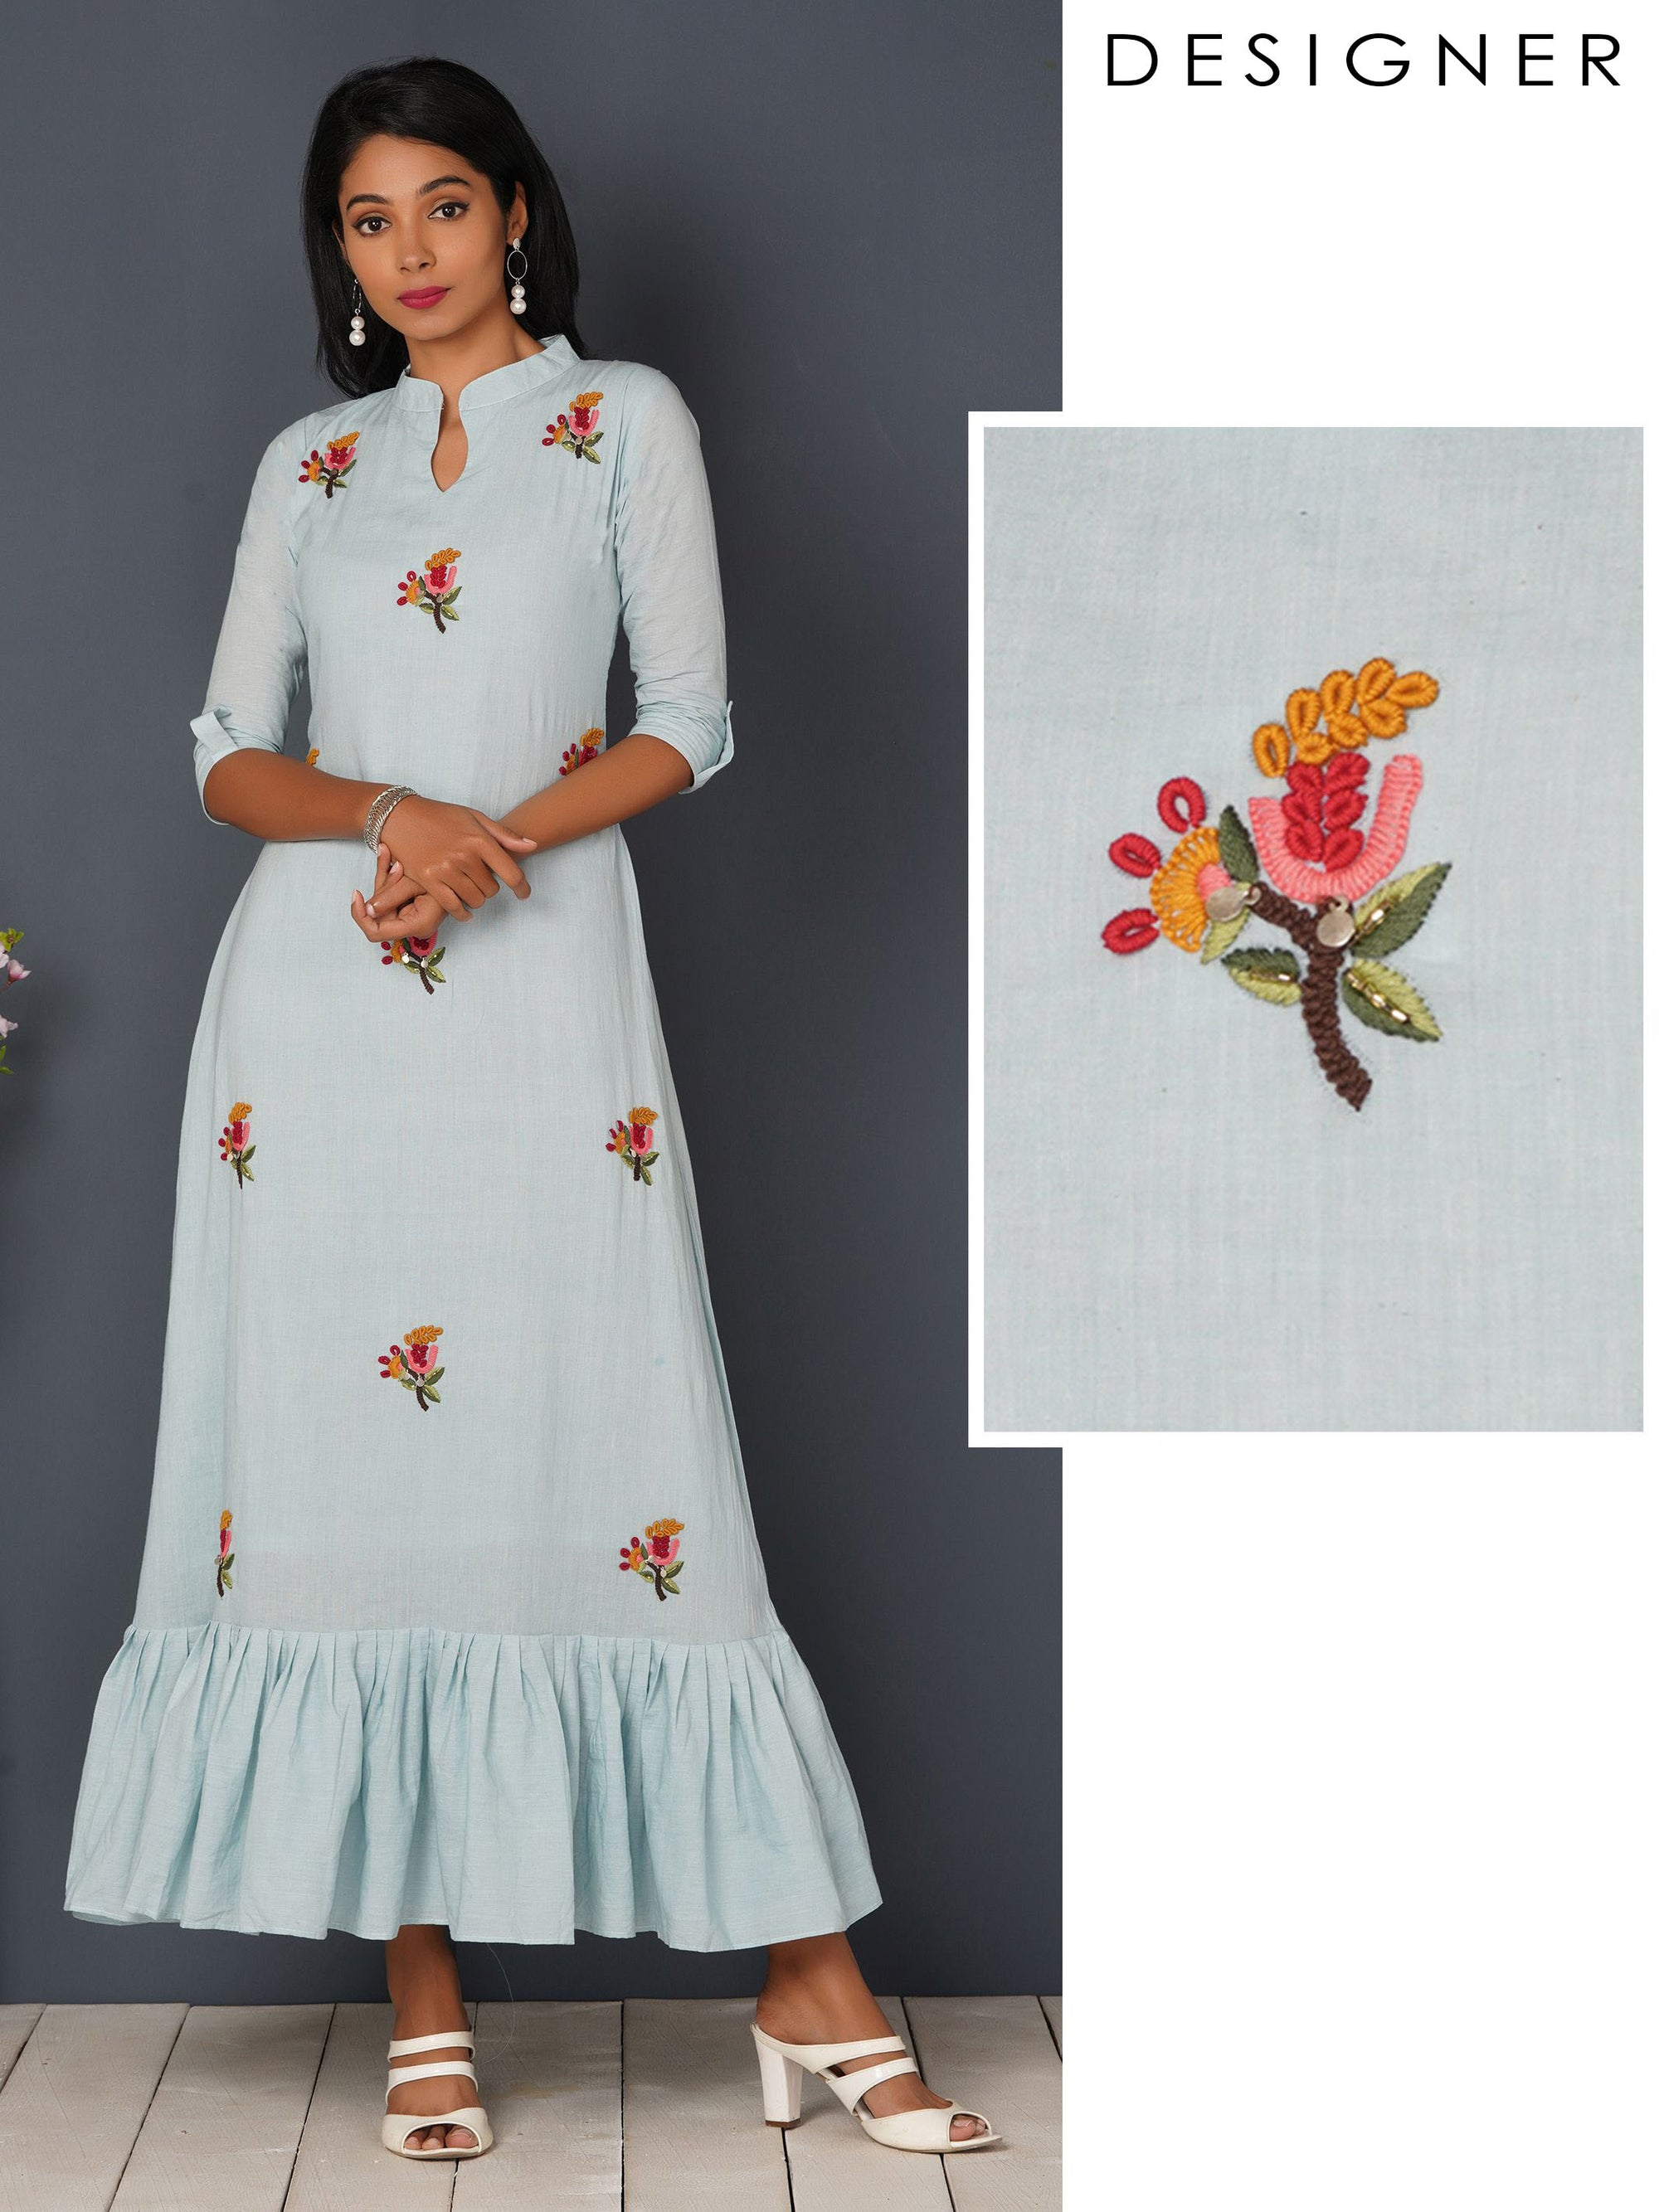 Bullion Knot Embroidered & Gathered Maxi - Powder Blue